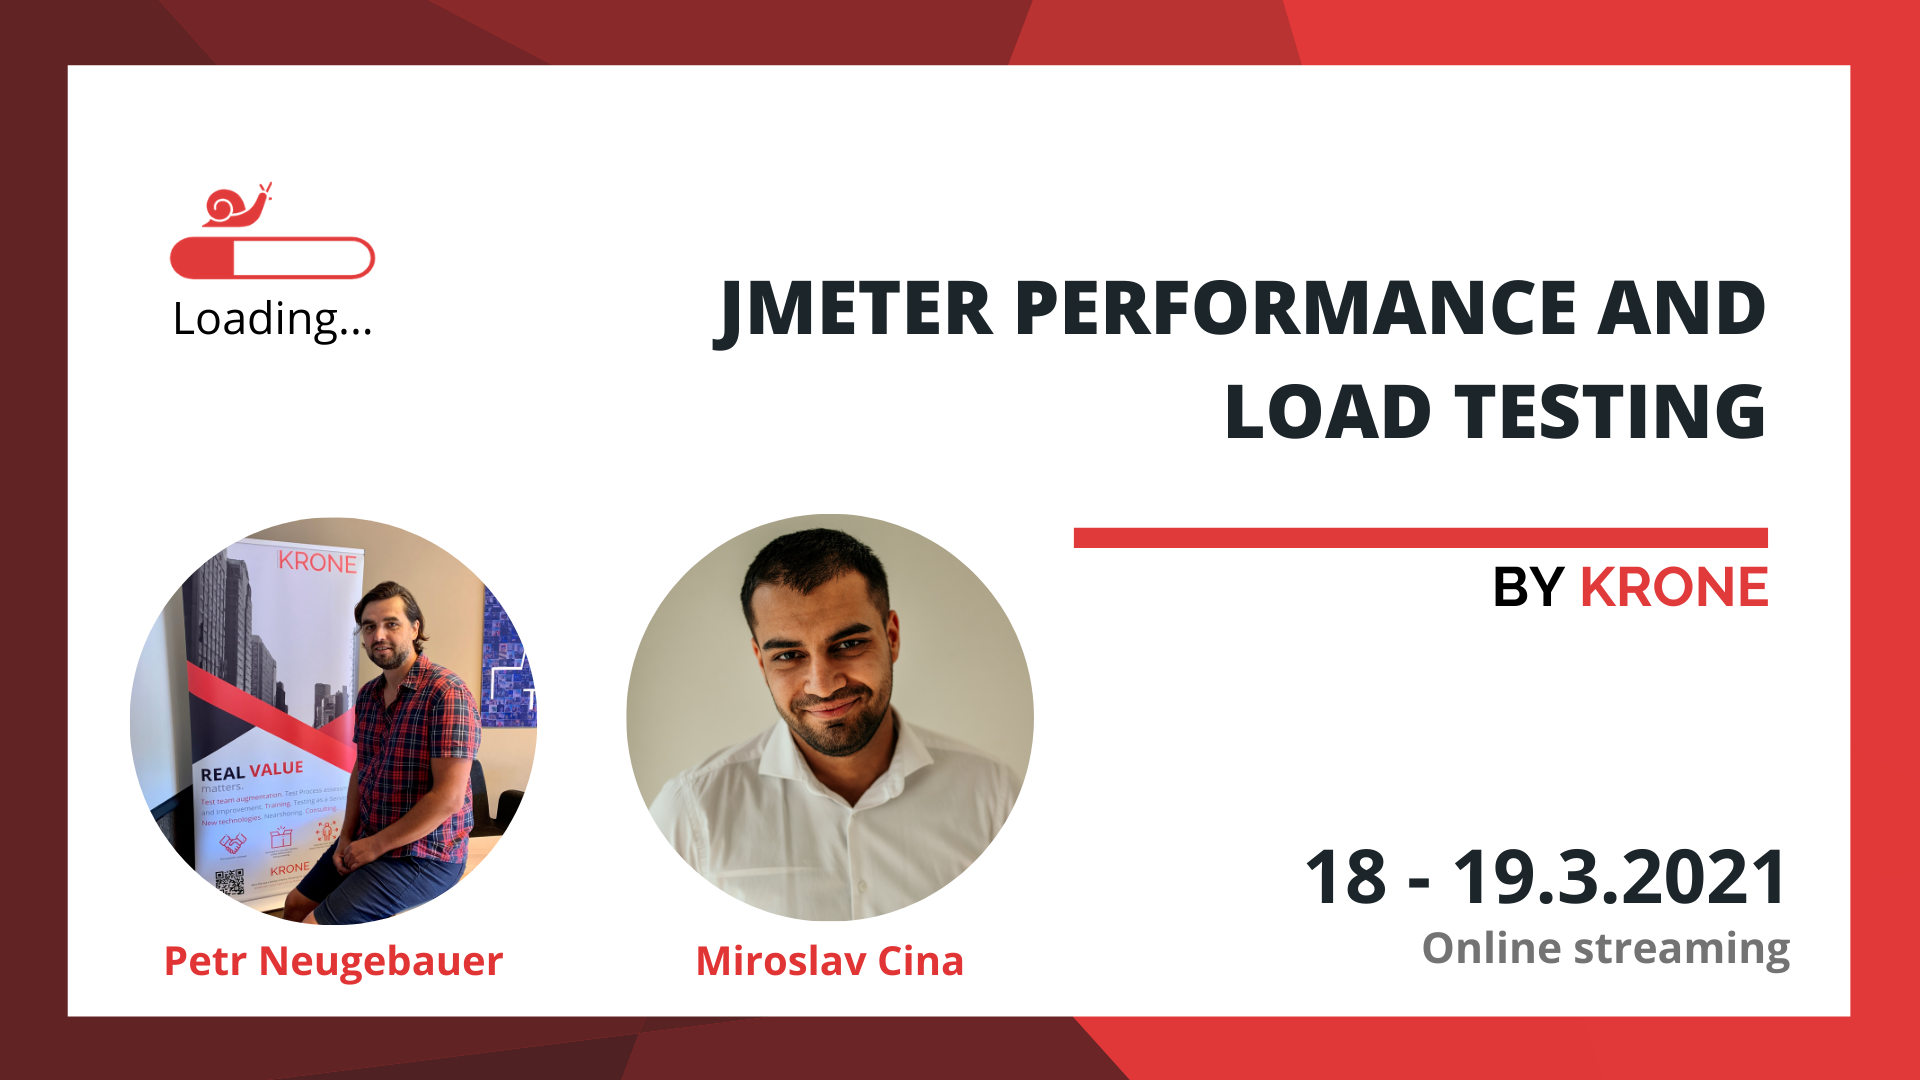 JMeter performance and load testing course